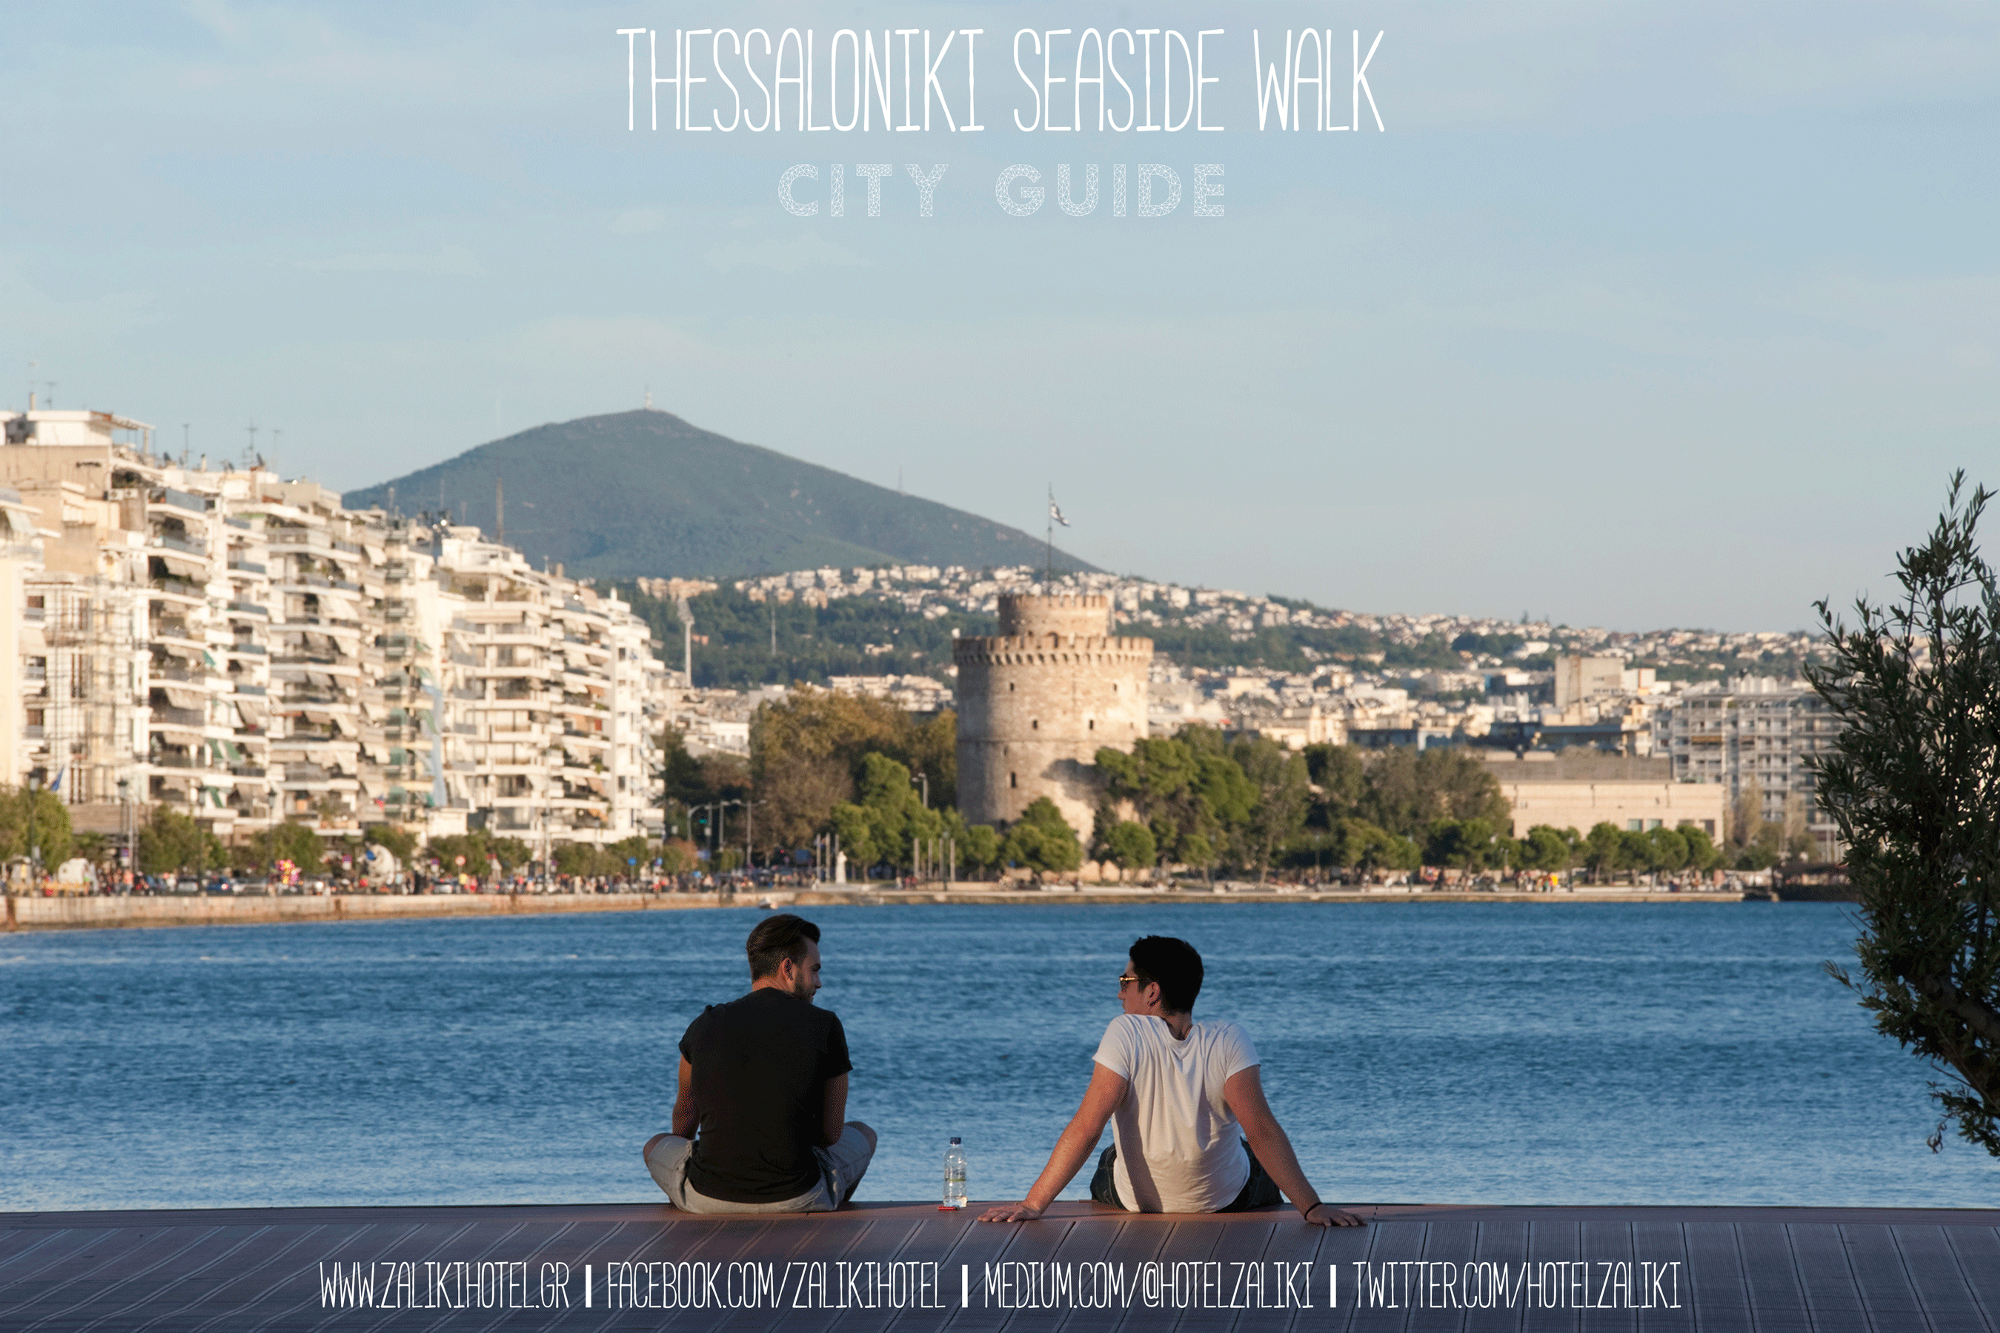 If You Are Visiting Thessaloniki For Only A Couple Of Hours And You Want To Take A Glimpse Of Thessaloniki This Guide Is For You